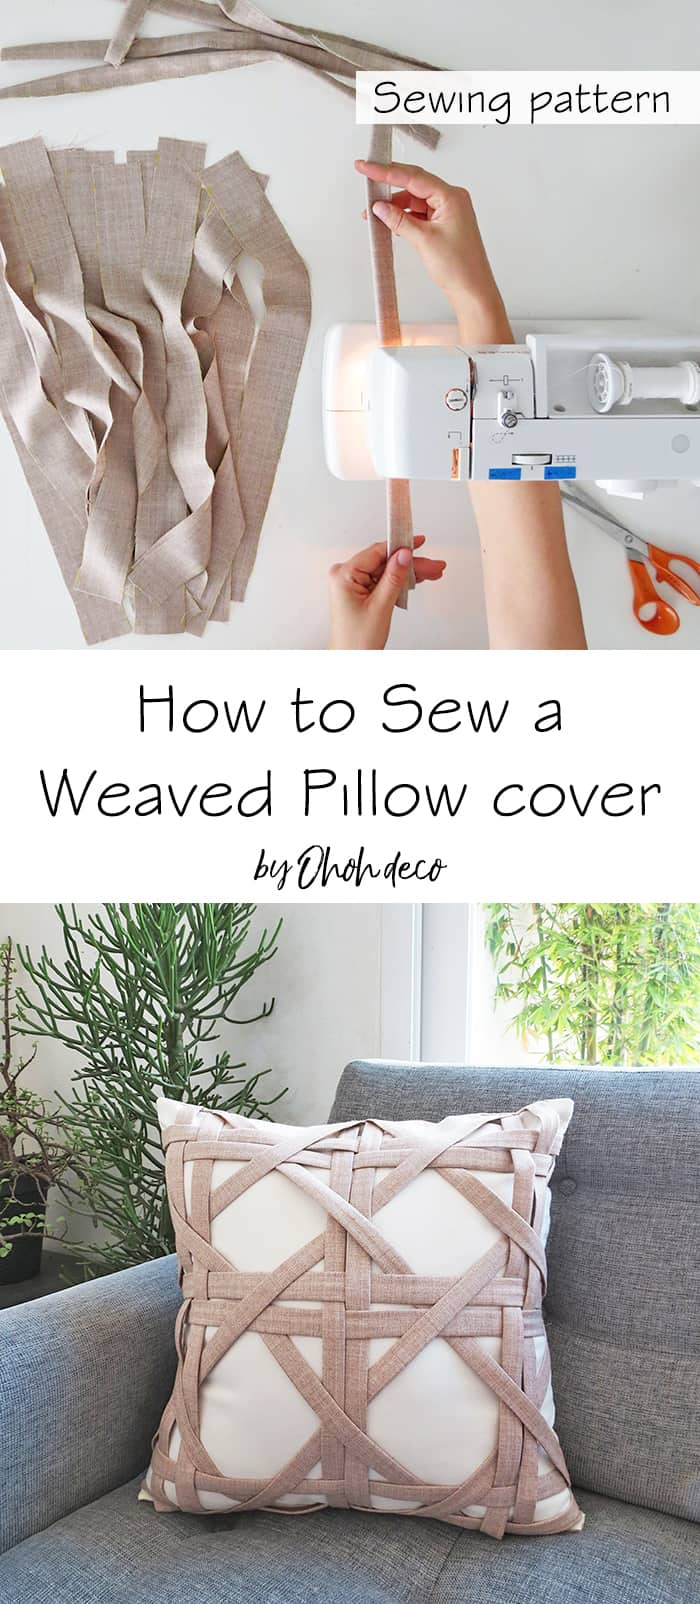 sew weaved pillow cover